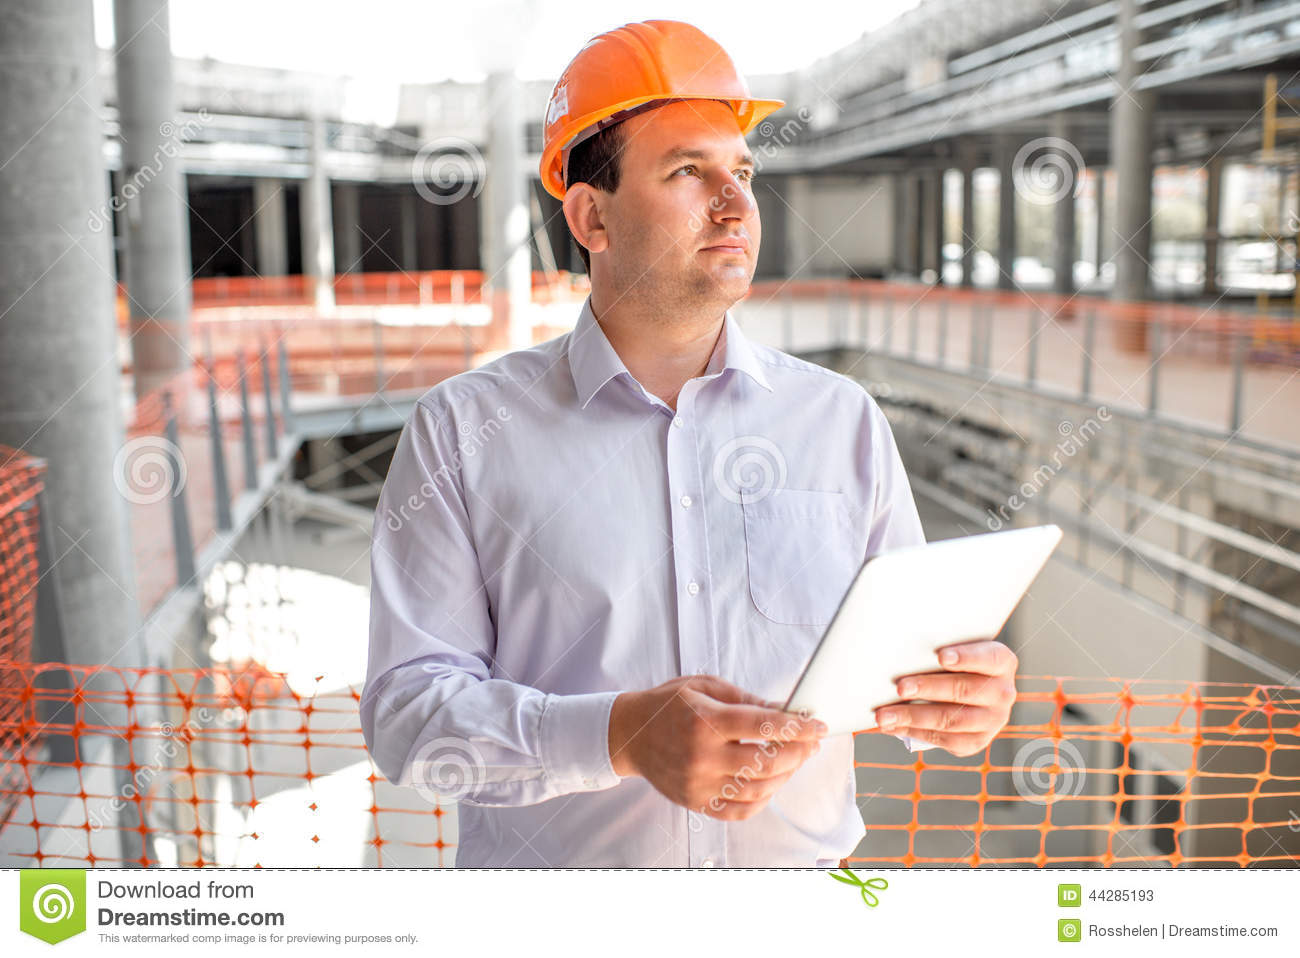 how to become a construction foreman